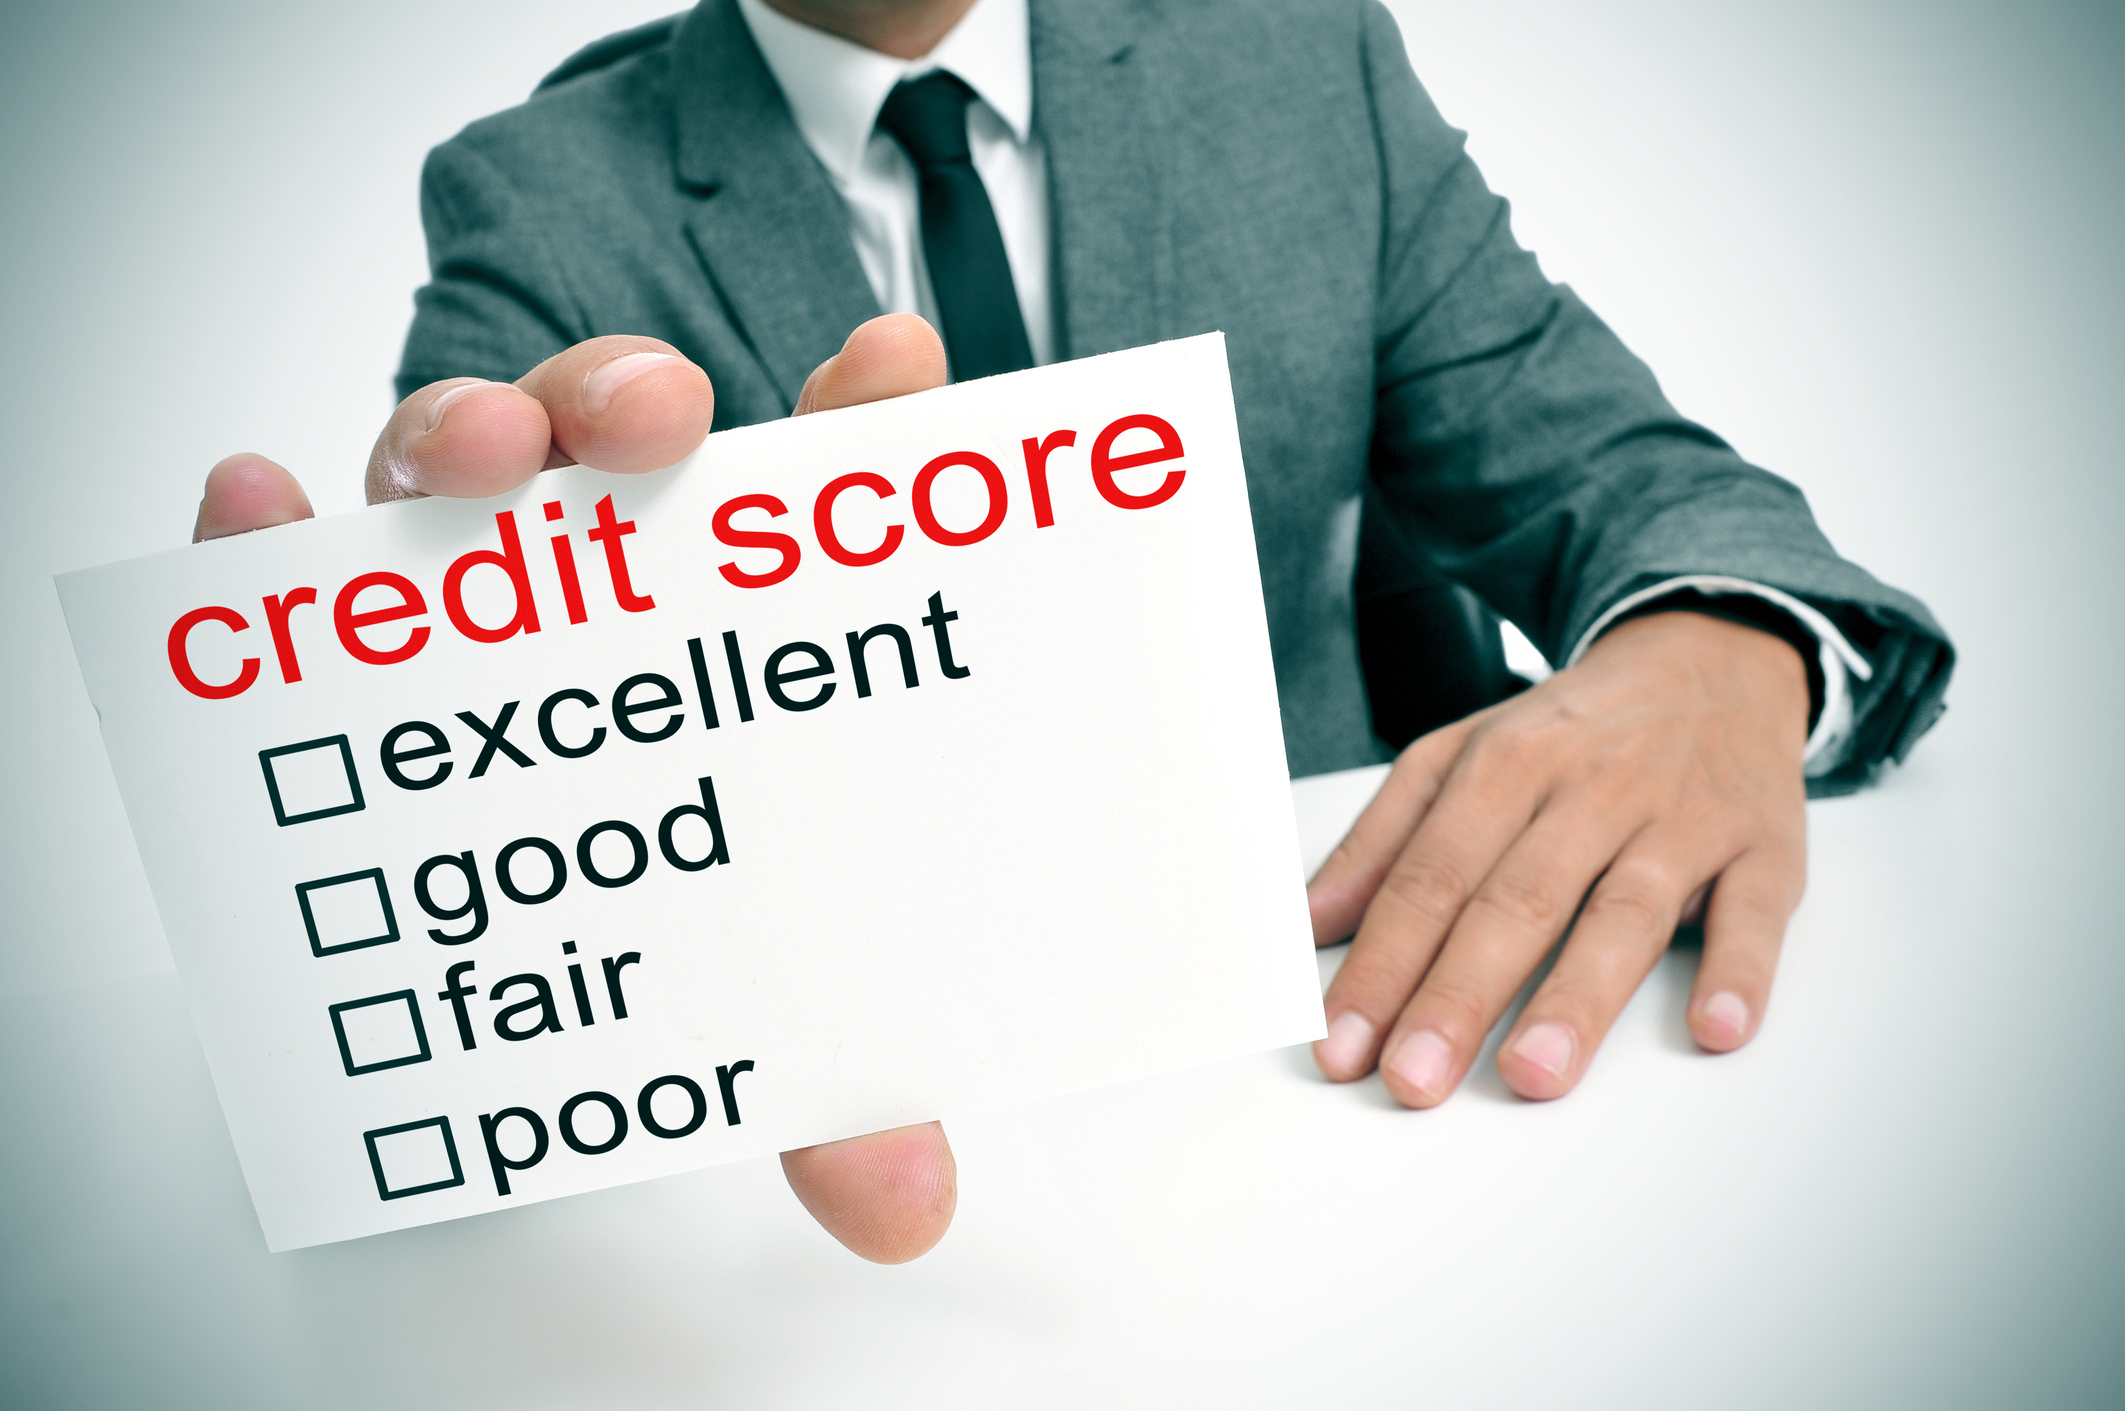 What Credit Score Do I Need for a Home Loan?